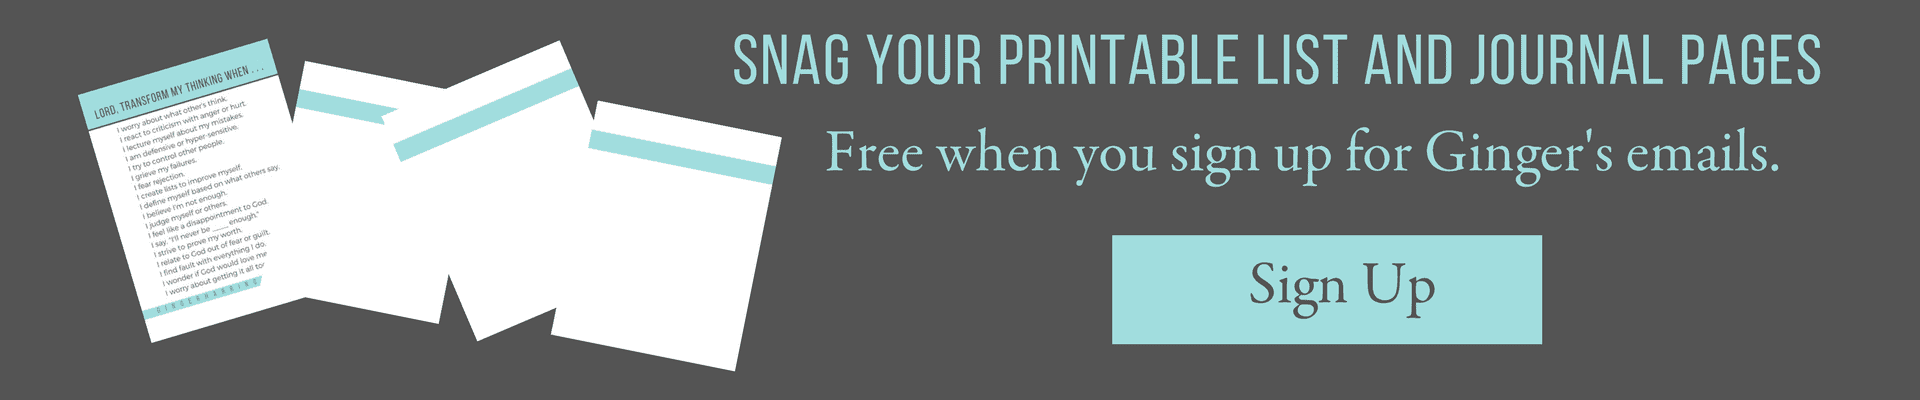 Sign up for printable list and journal pages.